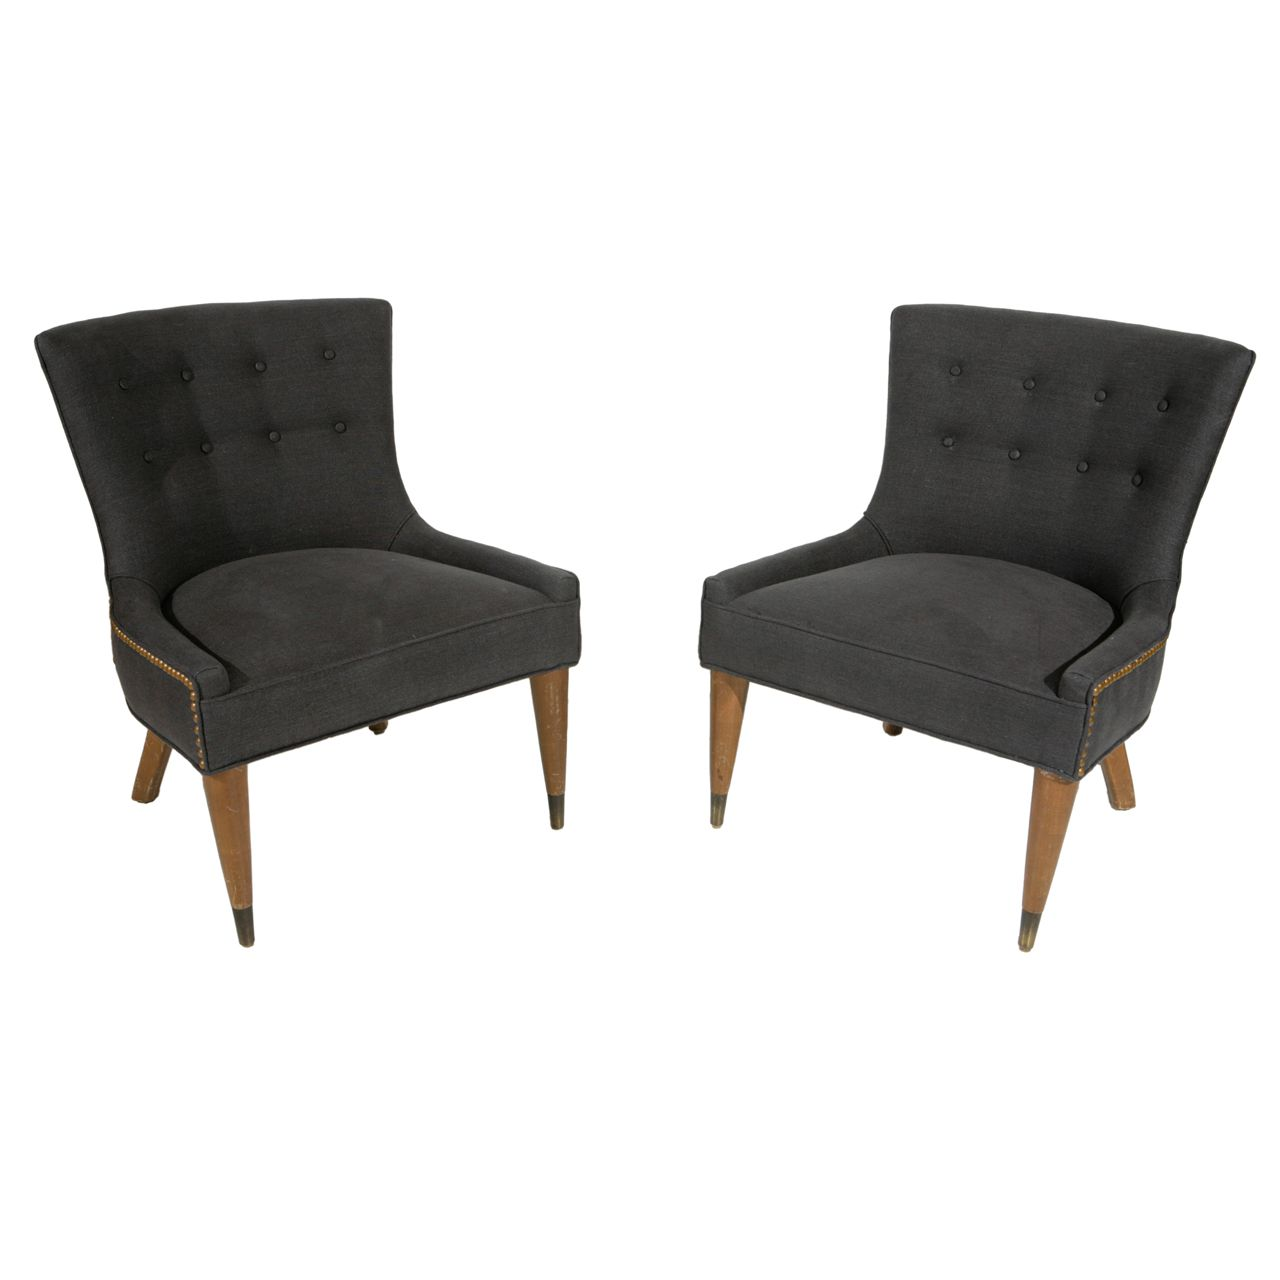 tufted accent chair with nailhead trim